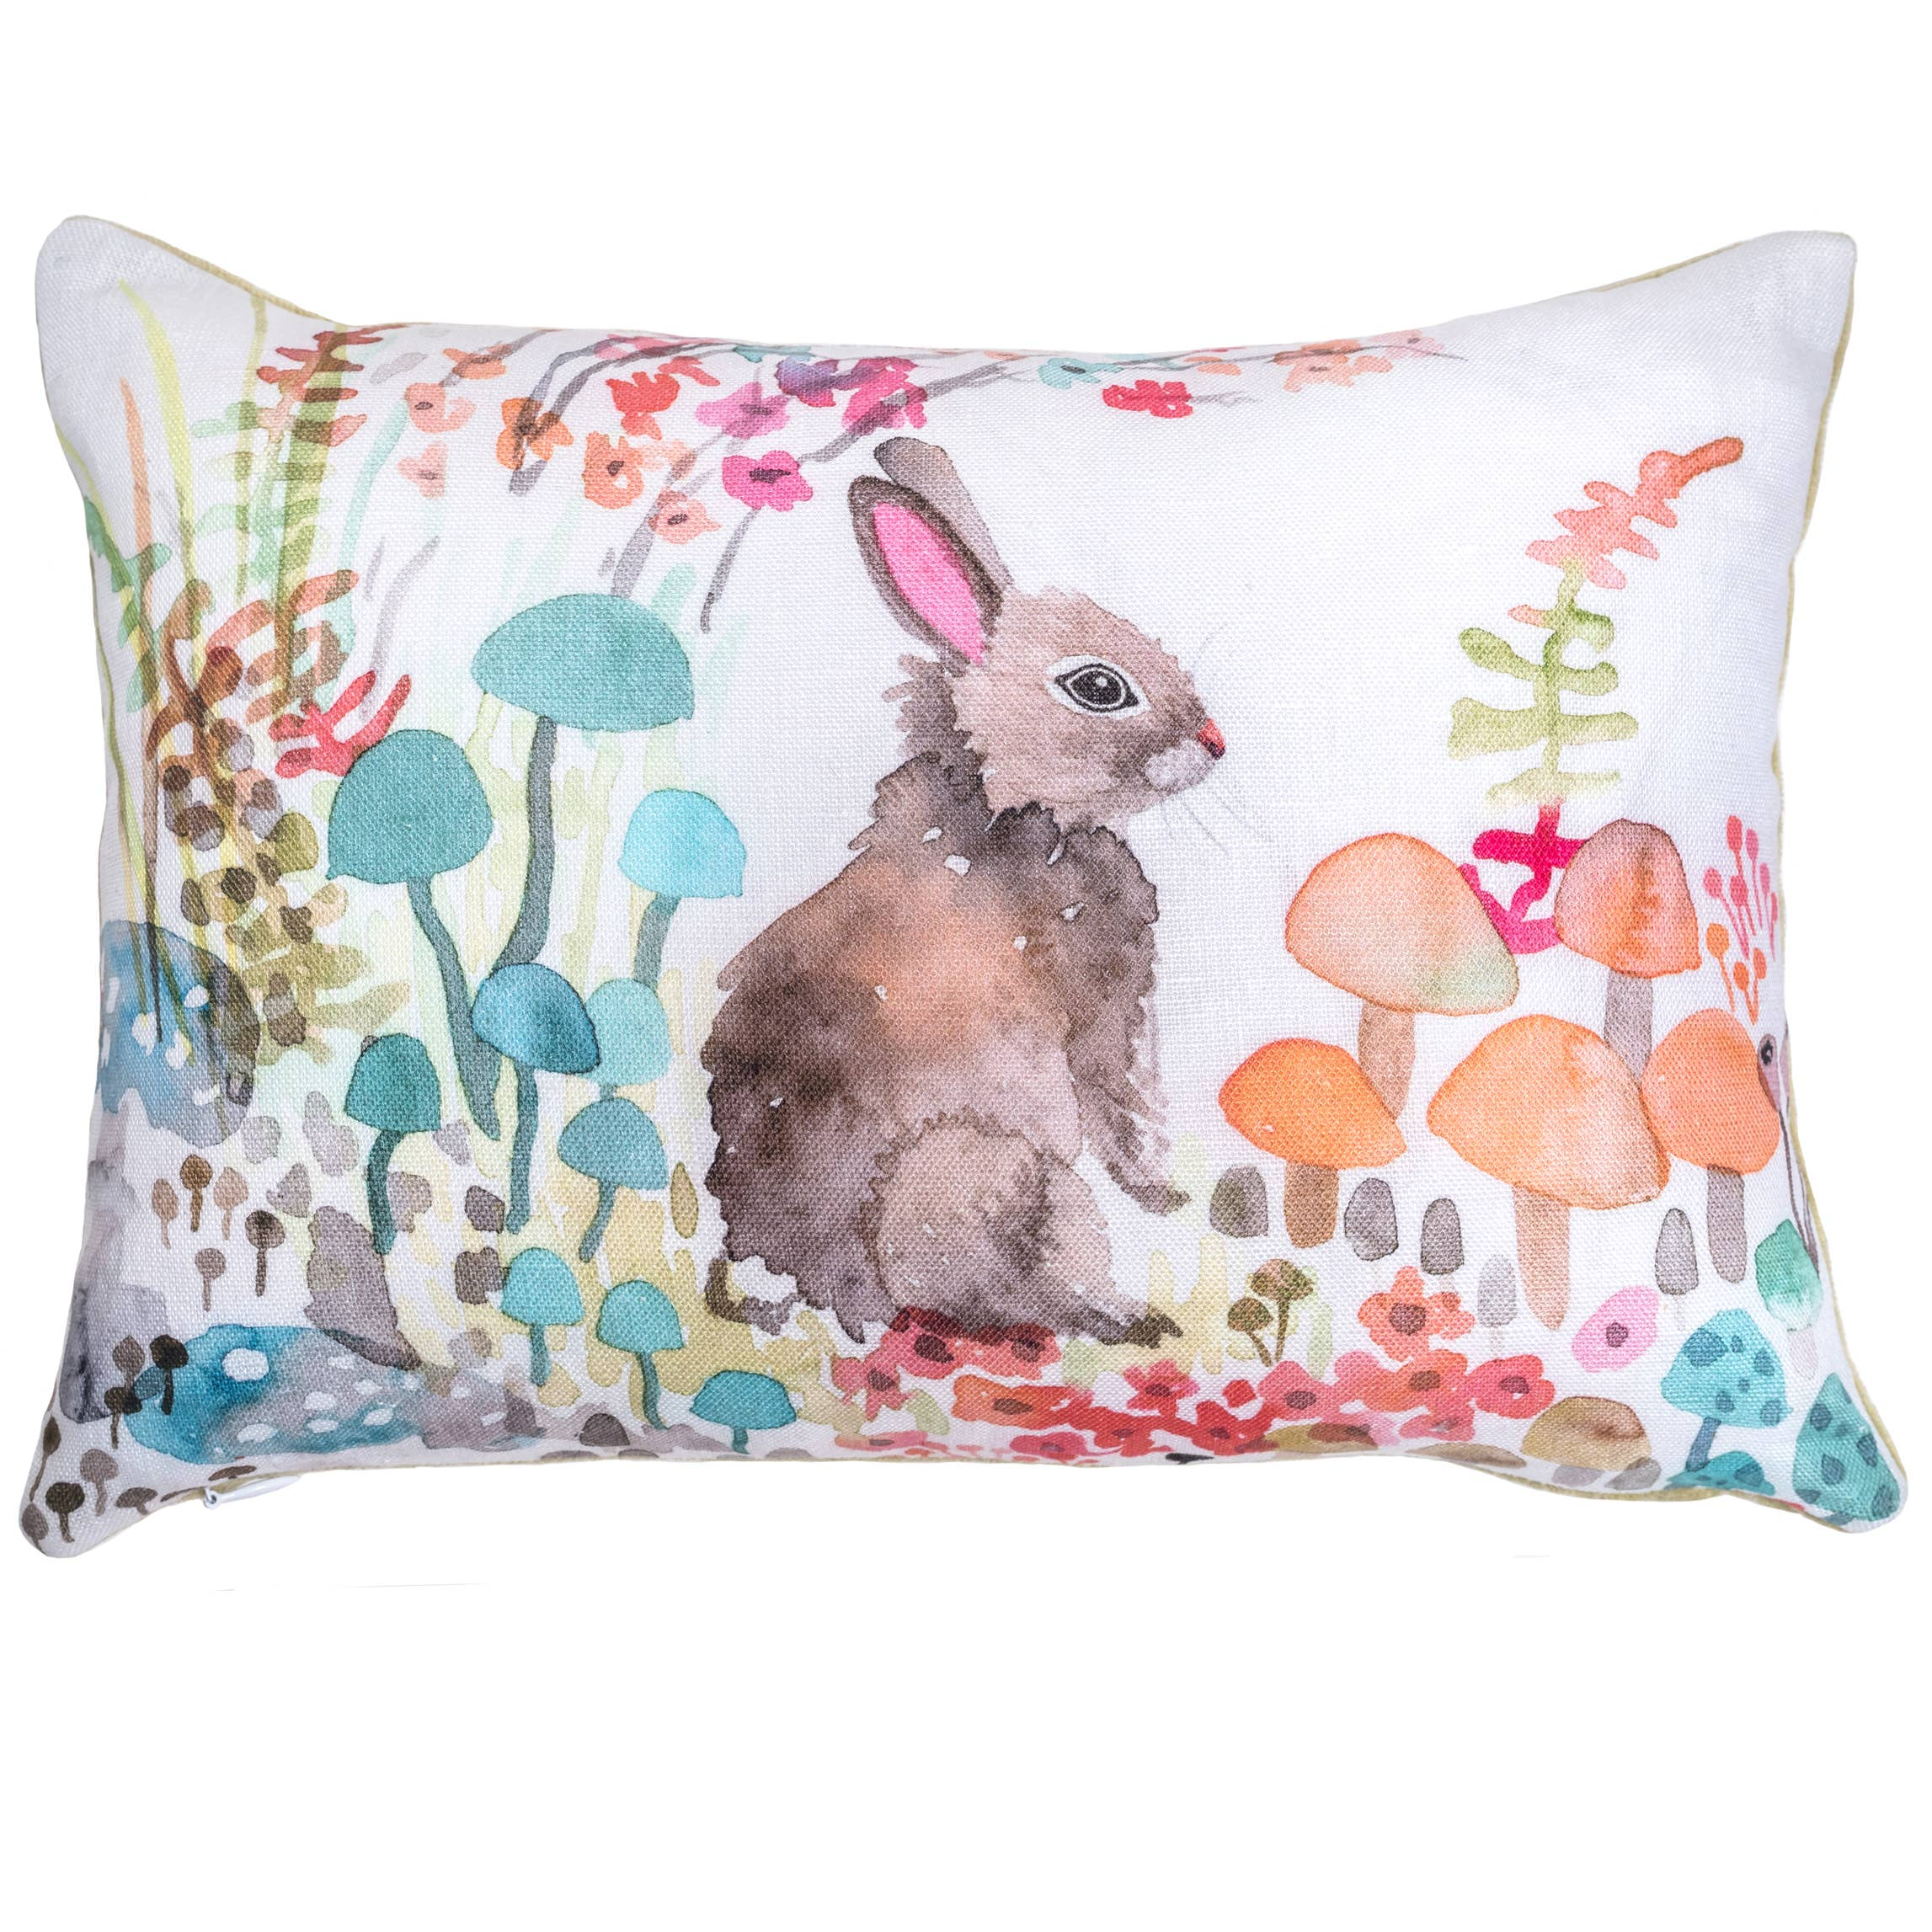 Pillow - Woodland Bunny